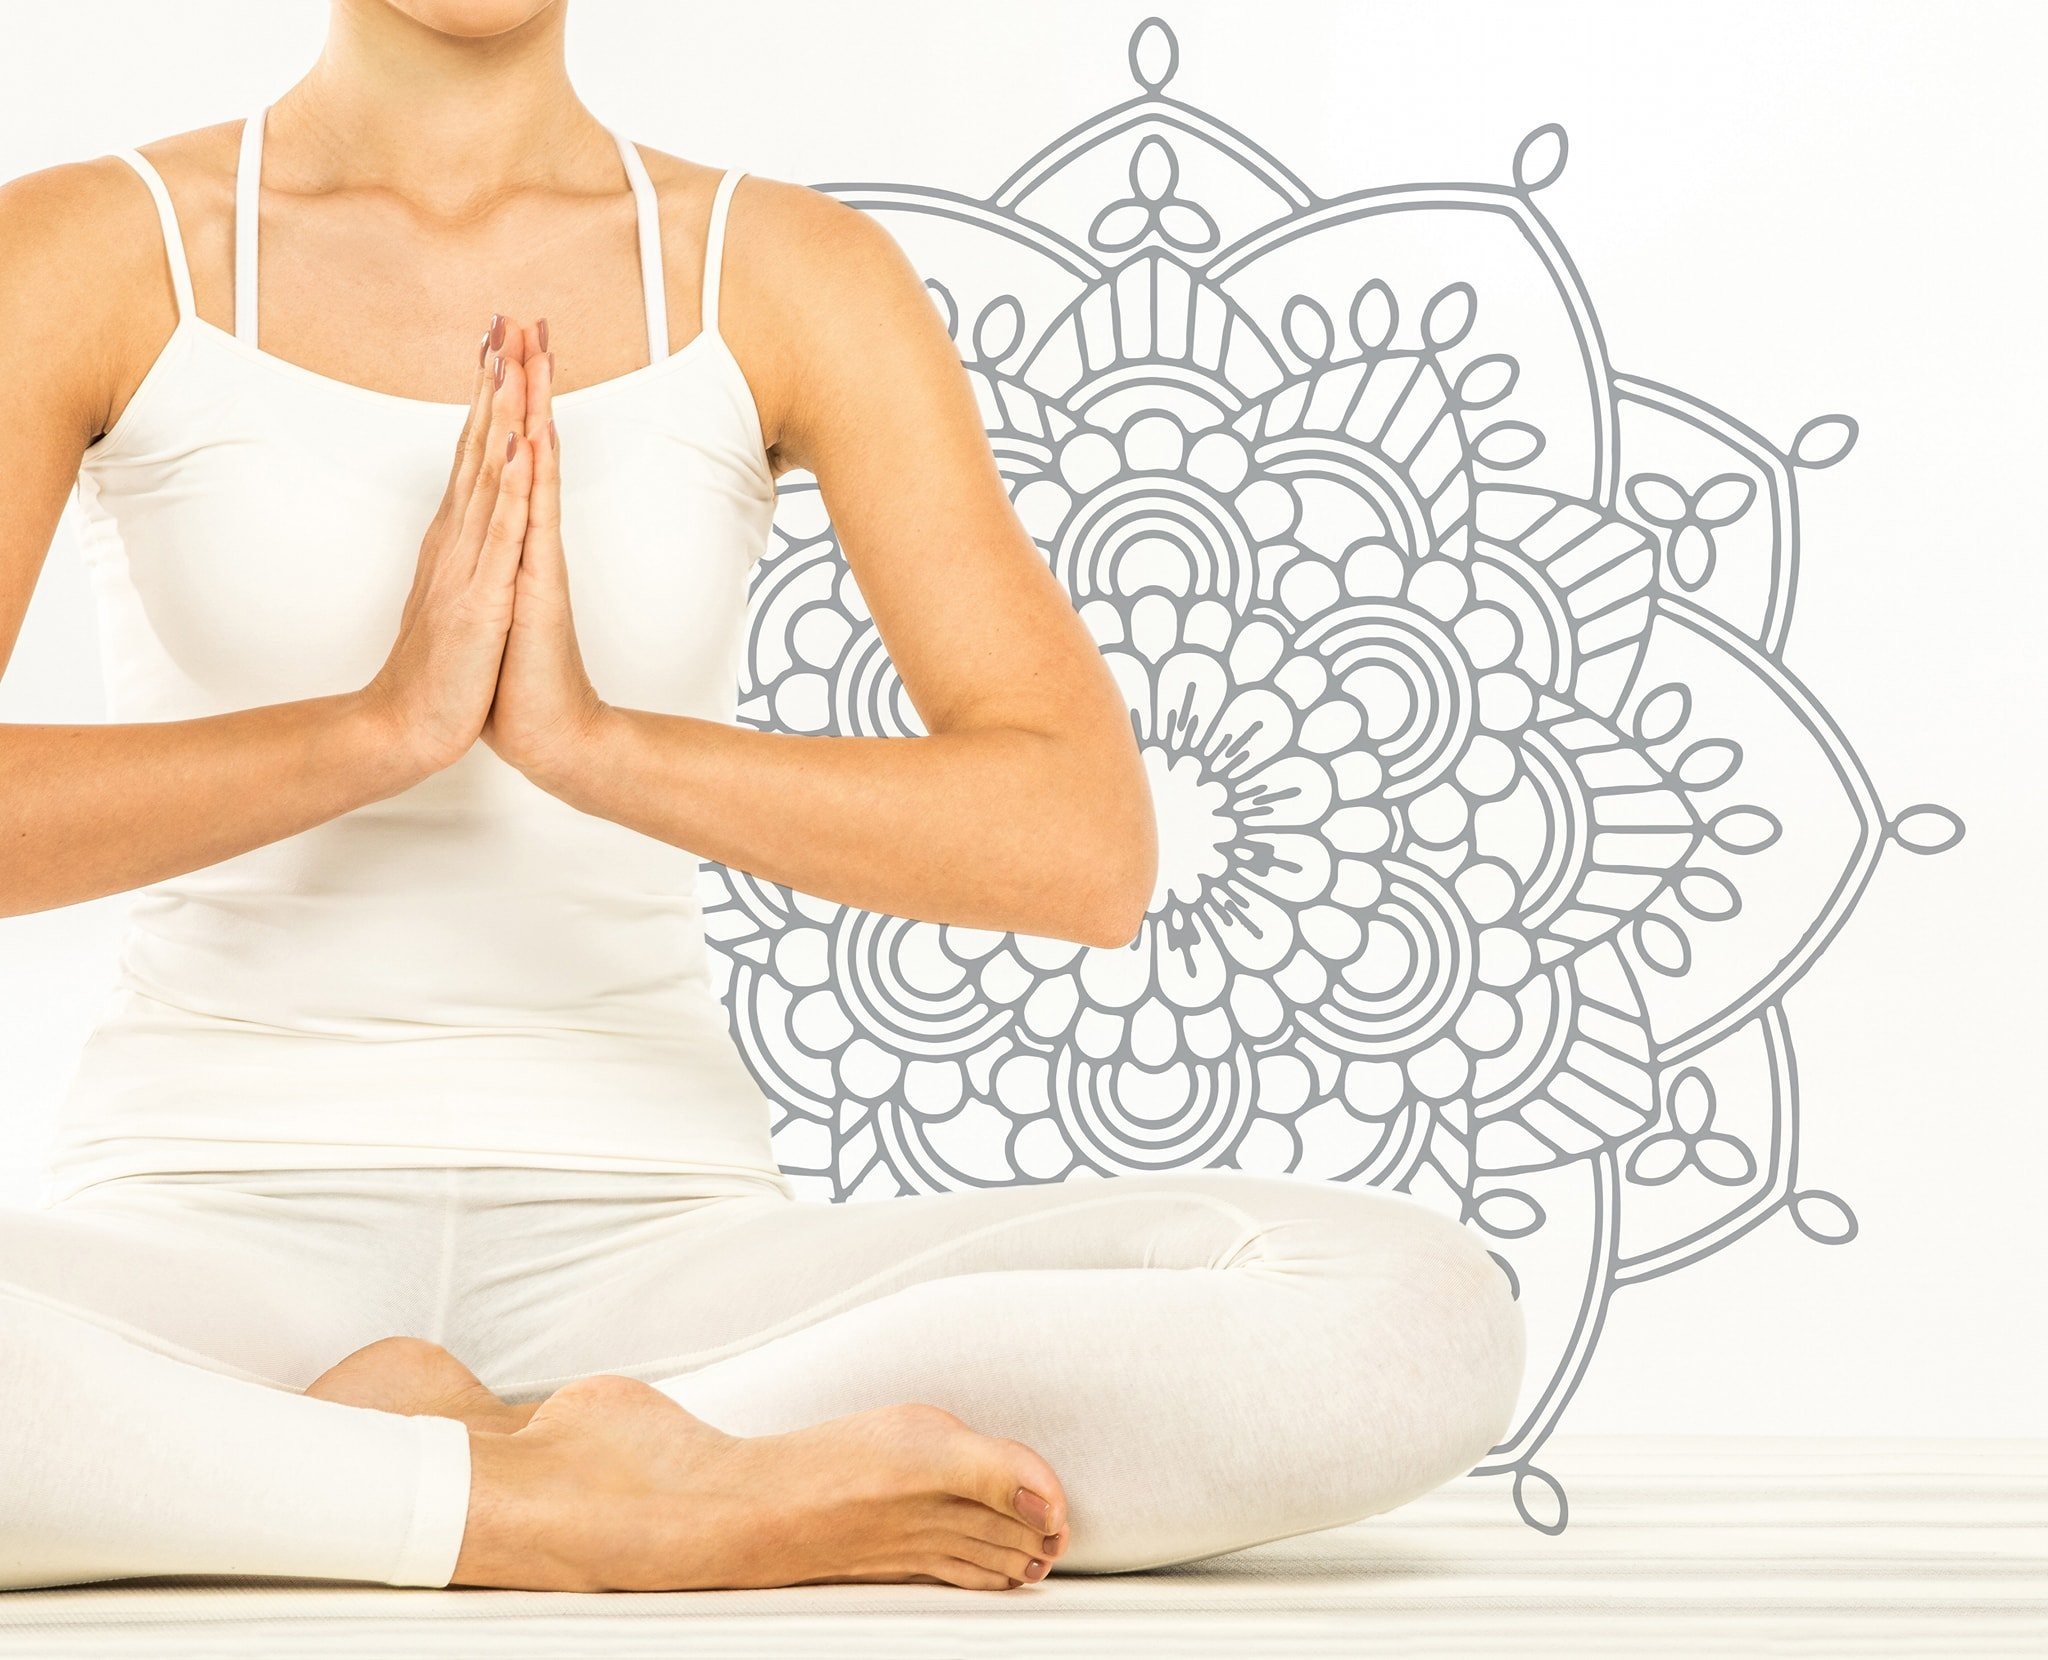 Kundalini Yoga workshop 1st of February